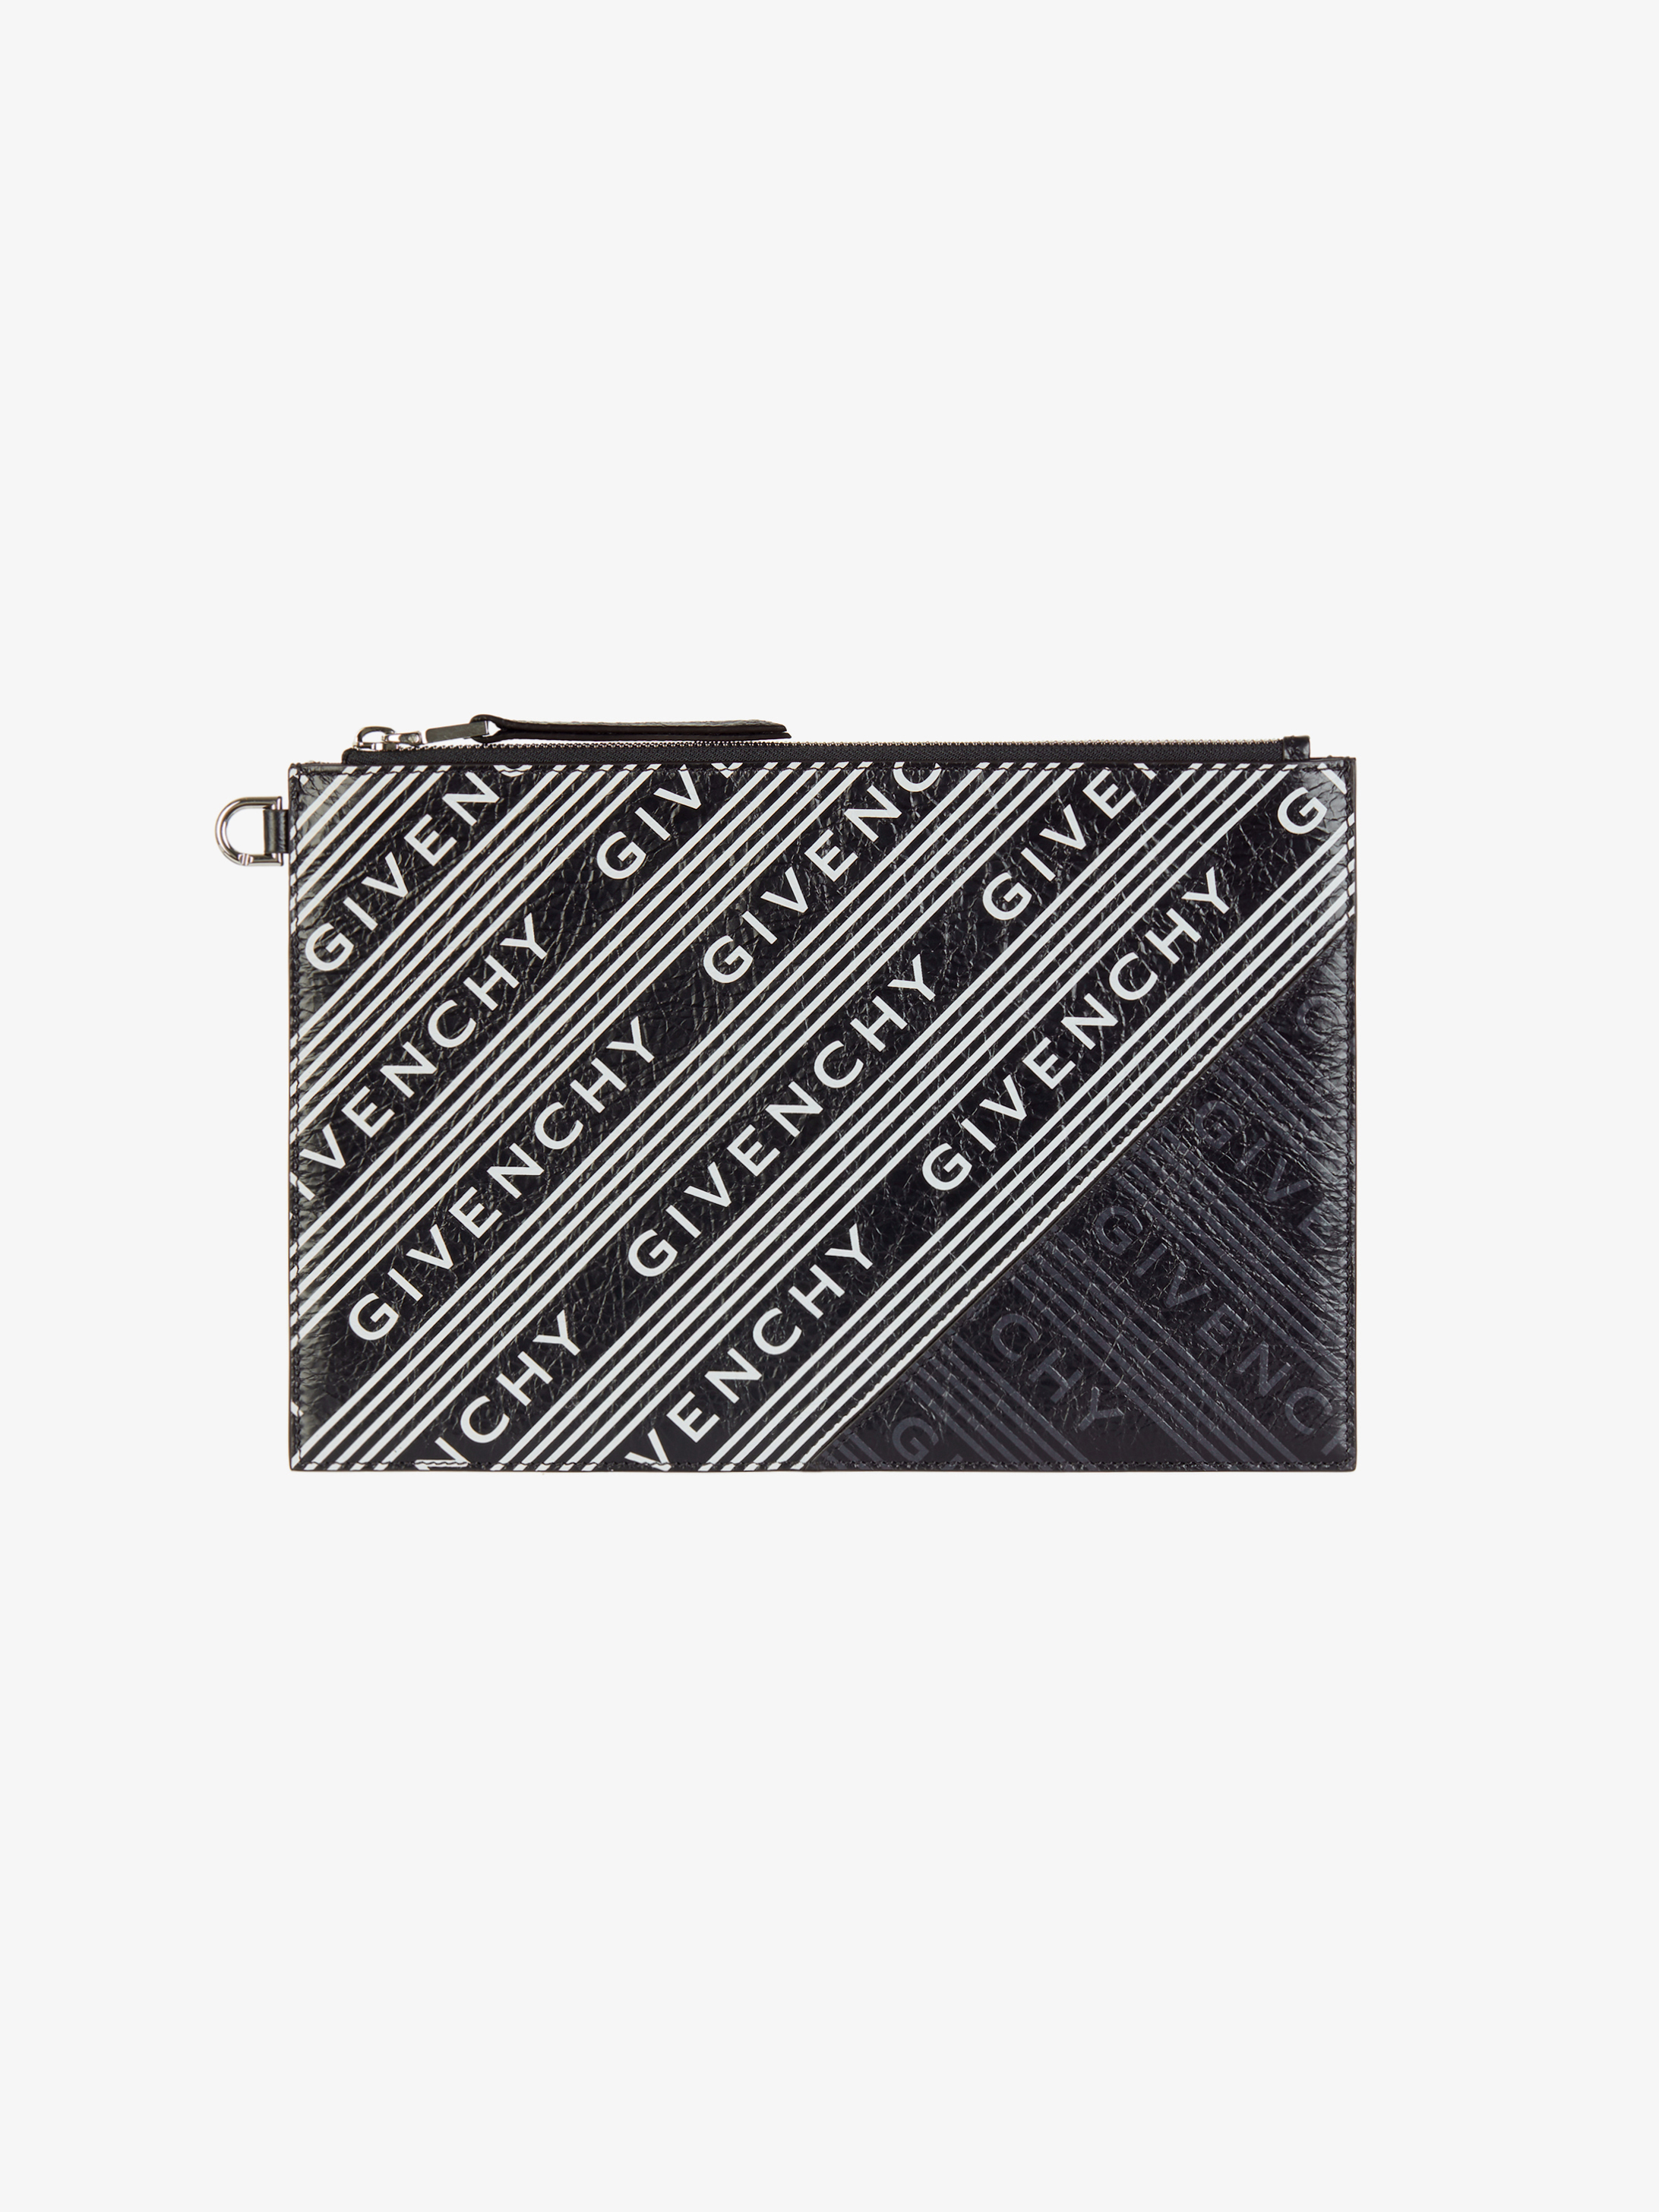 GIVENCHY medium pouch in striped leather